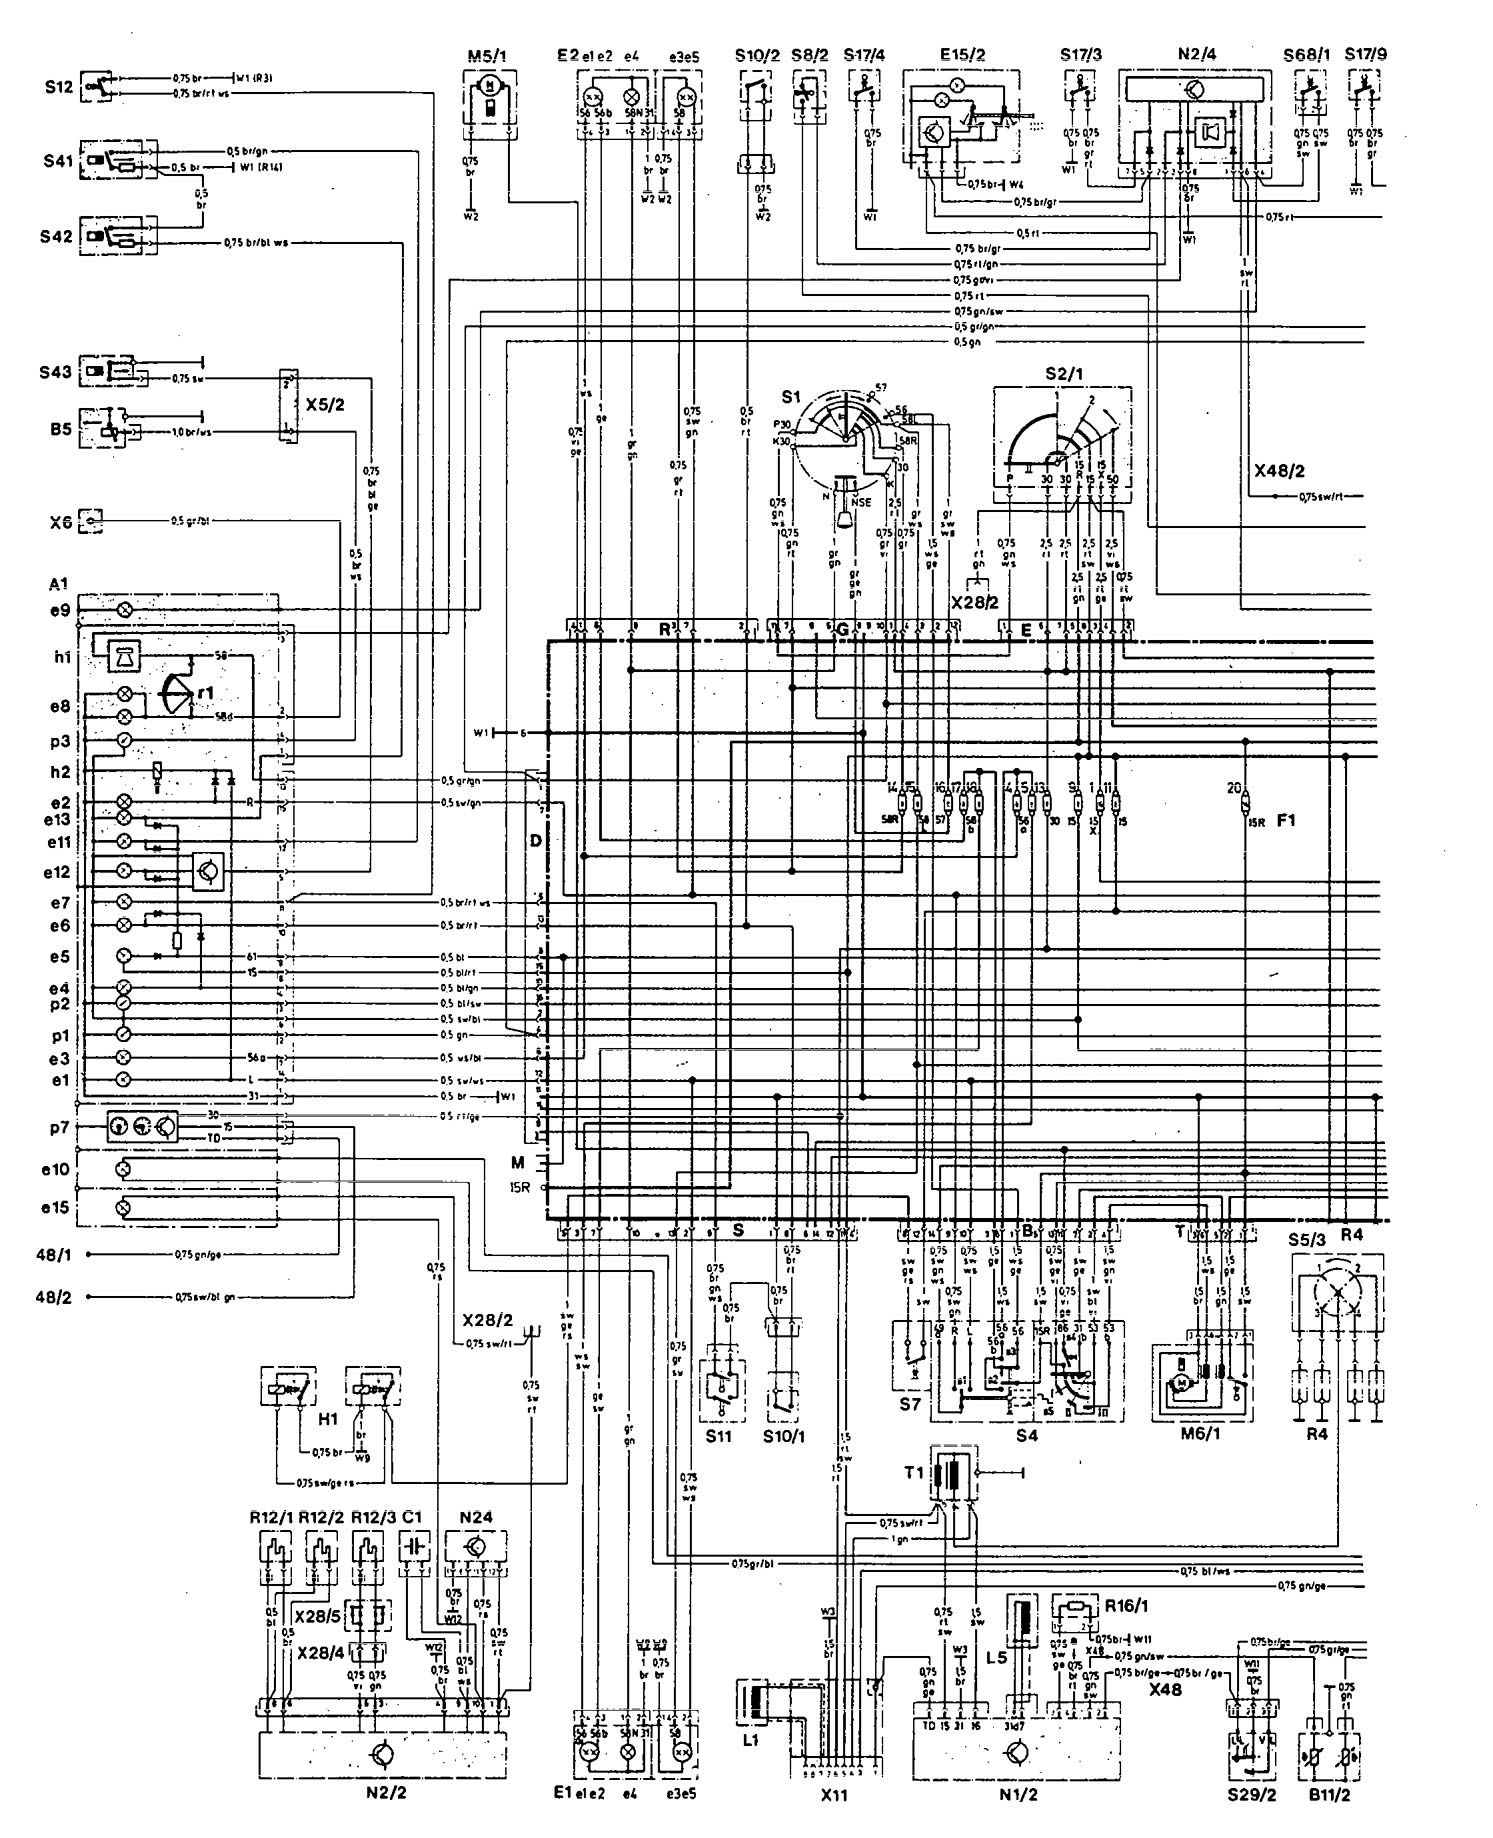 [GJFJ_338]  Mercedes 190E (1992) - wiring diagrams - ignition - Carknowledge.info | Mercedes A Class Wiring Diagram |  | Carknowledge.info